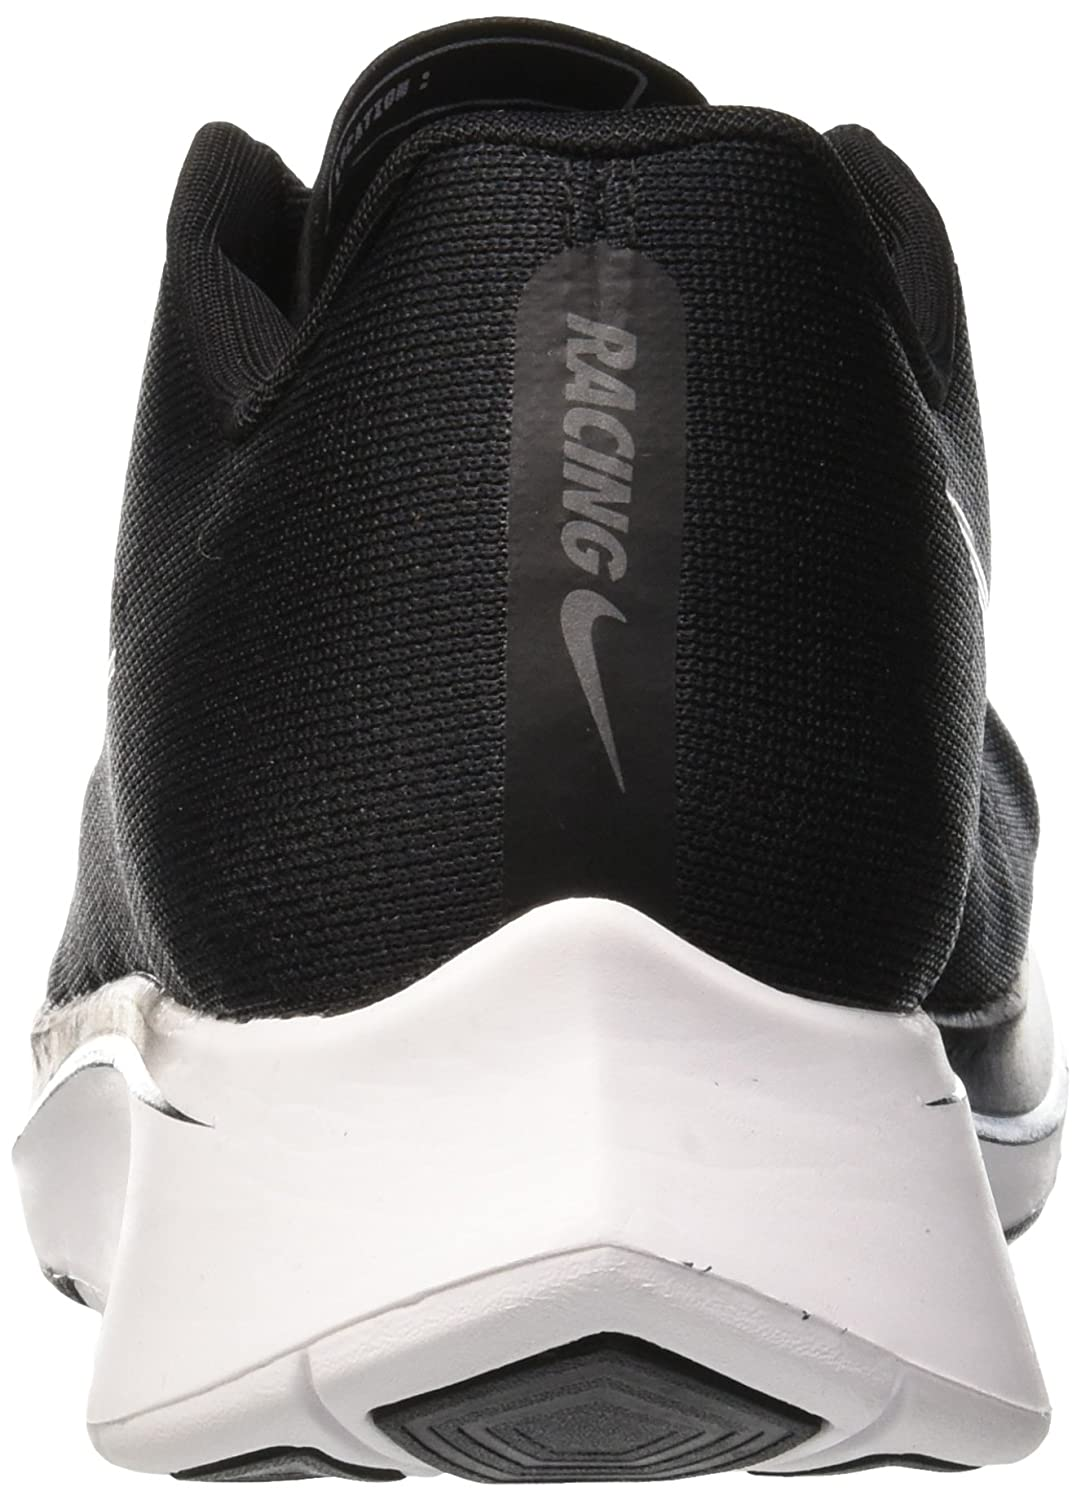 save off 9da0e f23b1 Amazon.com   Nike Mens Zoom Fly SP Lightweight Trainer Running Shoes    Track   Field   Cross Country